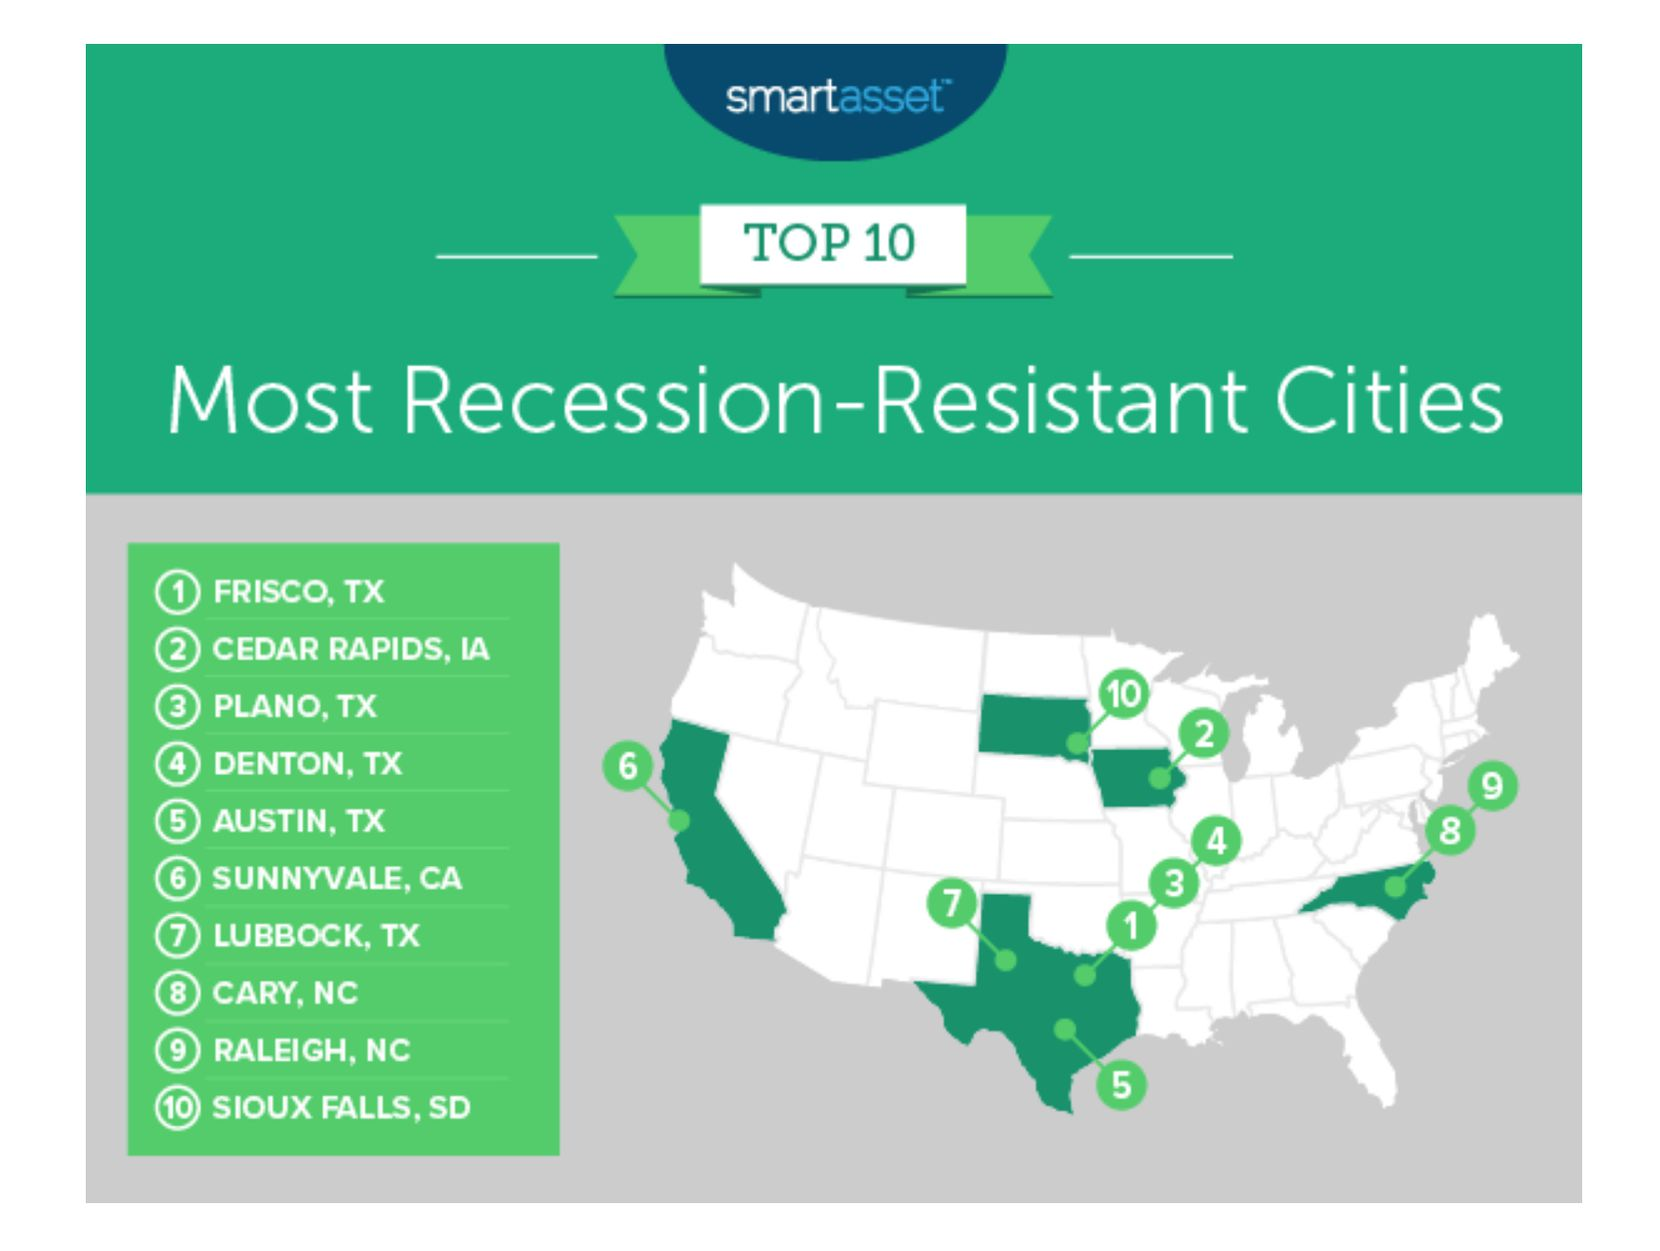 Five Texas cities made the top 10 list.